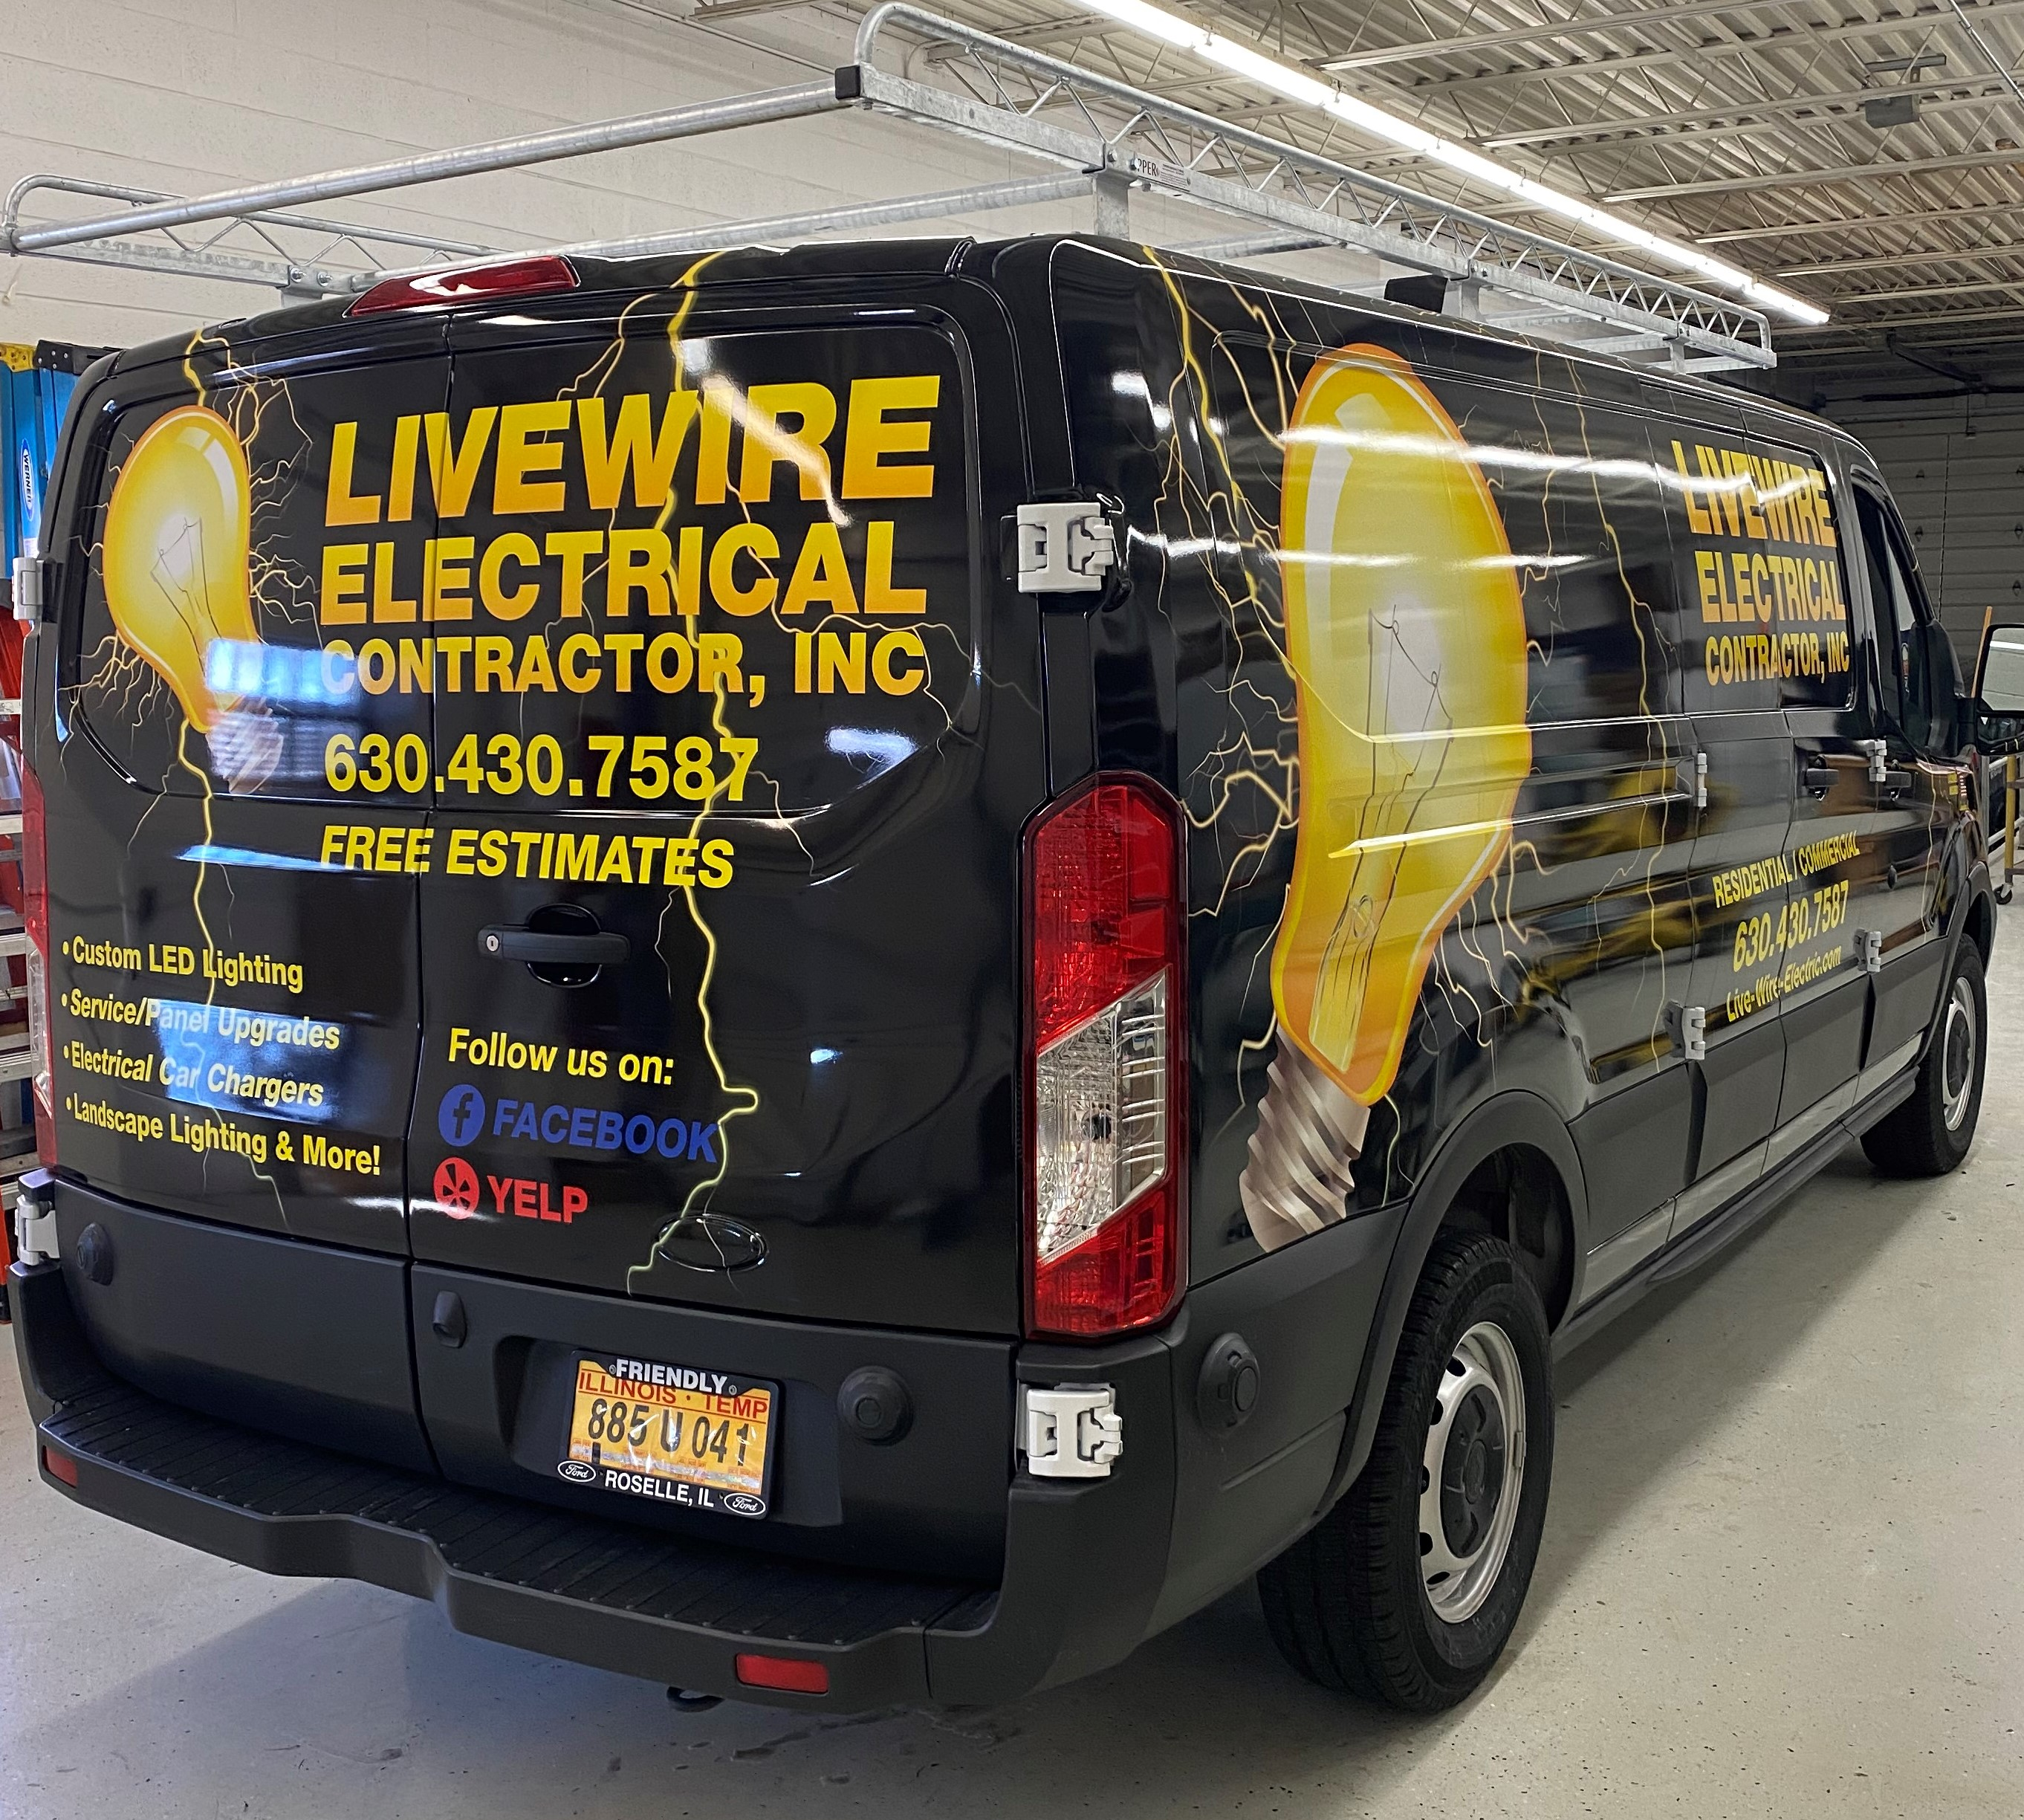 Livewre Electrical Contractor, Inc. Vehicle Wrap